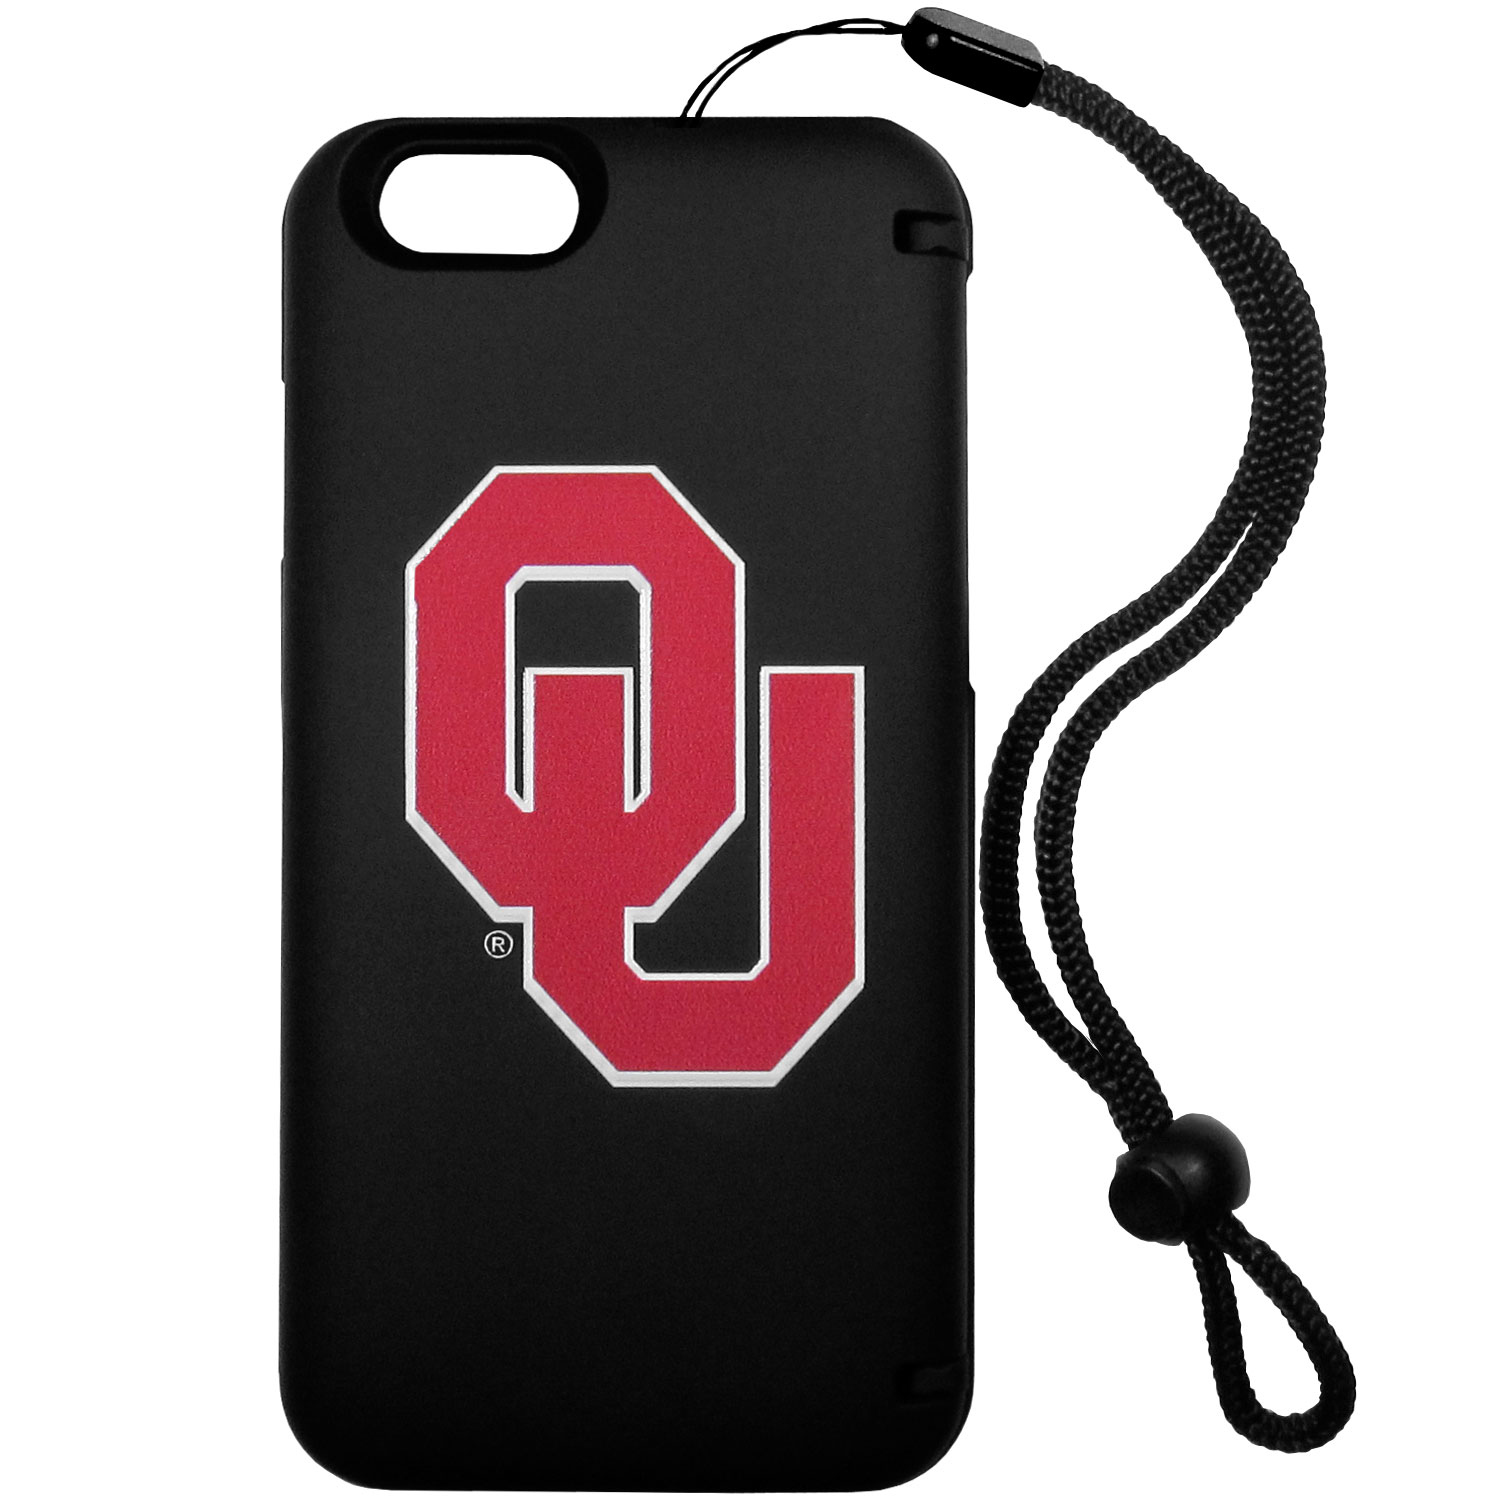 Oklahoma Sooners iPhone 6 Everything Case - This case really does have everything but the kitchen sink! The hidden compartment lets you keep your cards, money and tickets to the big game safe and secure and has a compact mirror so you can make sure your game face is ready to go. It also comes with a kickstand to make chatting and watching videos a breeze. The wrist strap allows you to travel with ease with your everything case. If that's not enough, it also comes with the Oklahoma Sooners logo printed in expert detail on the front.